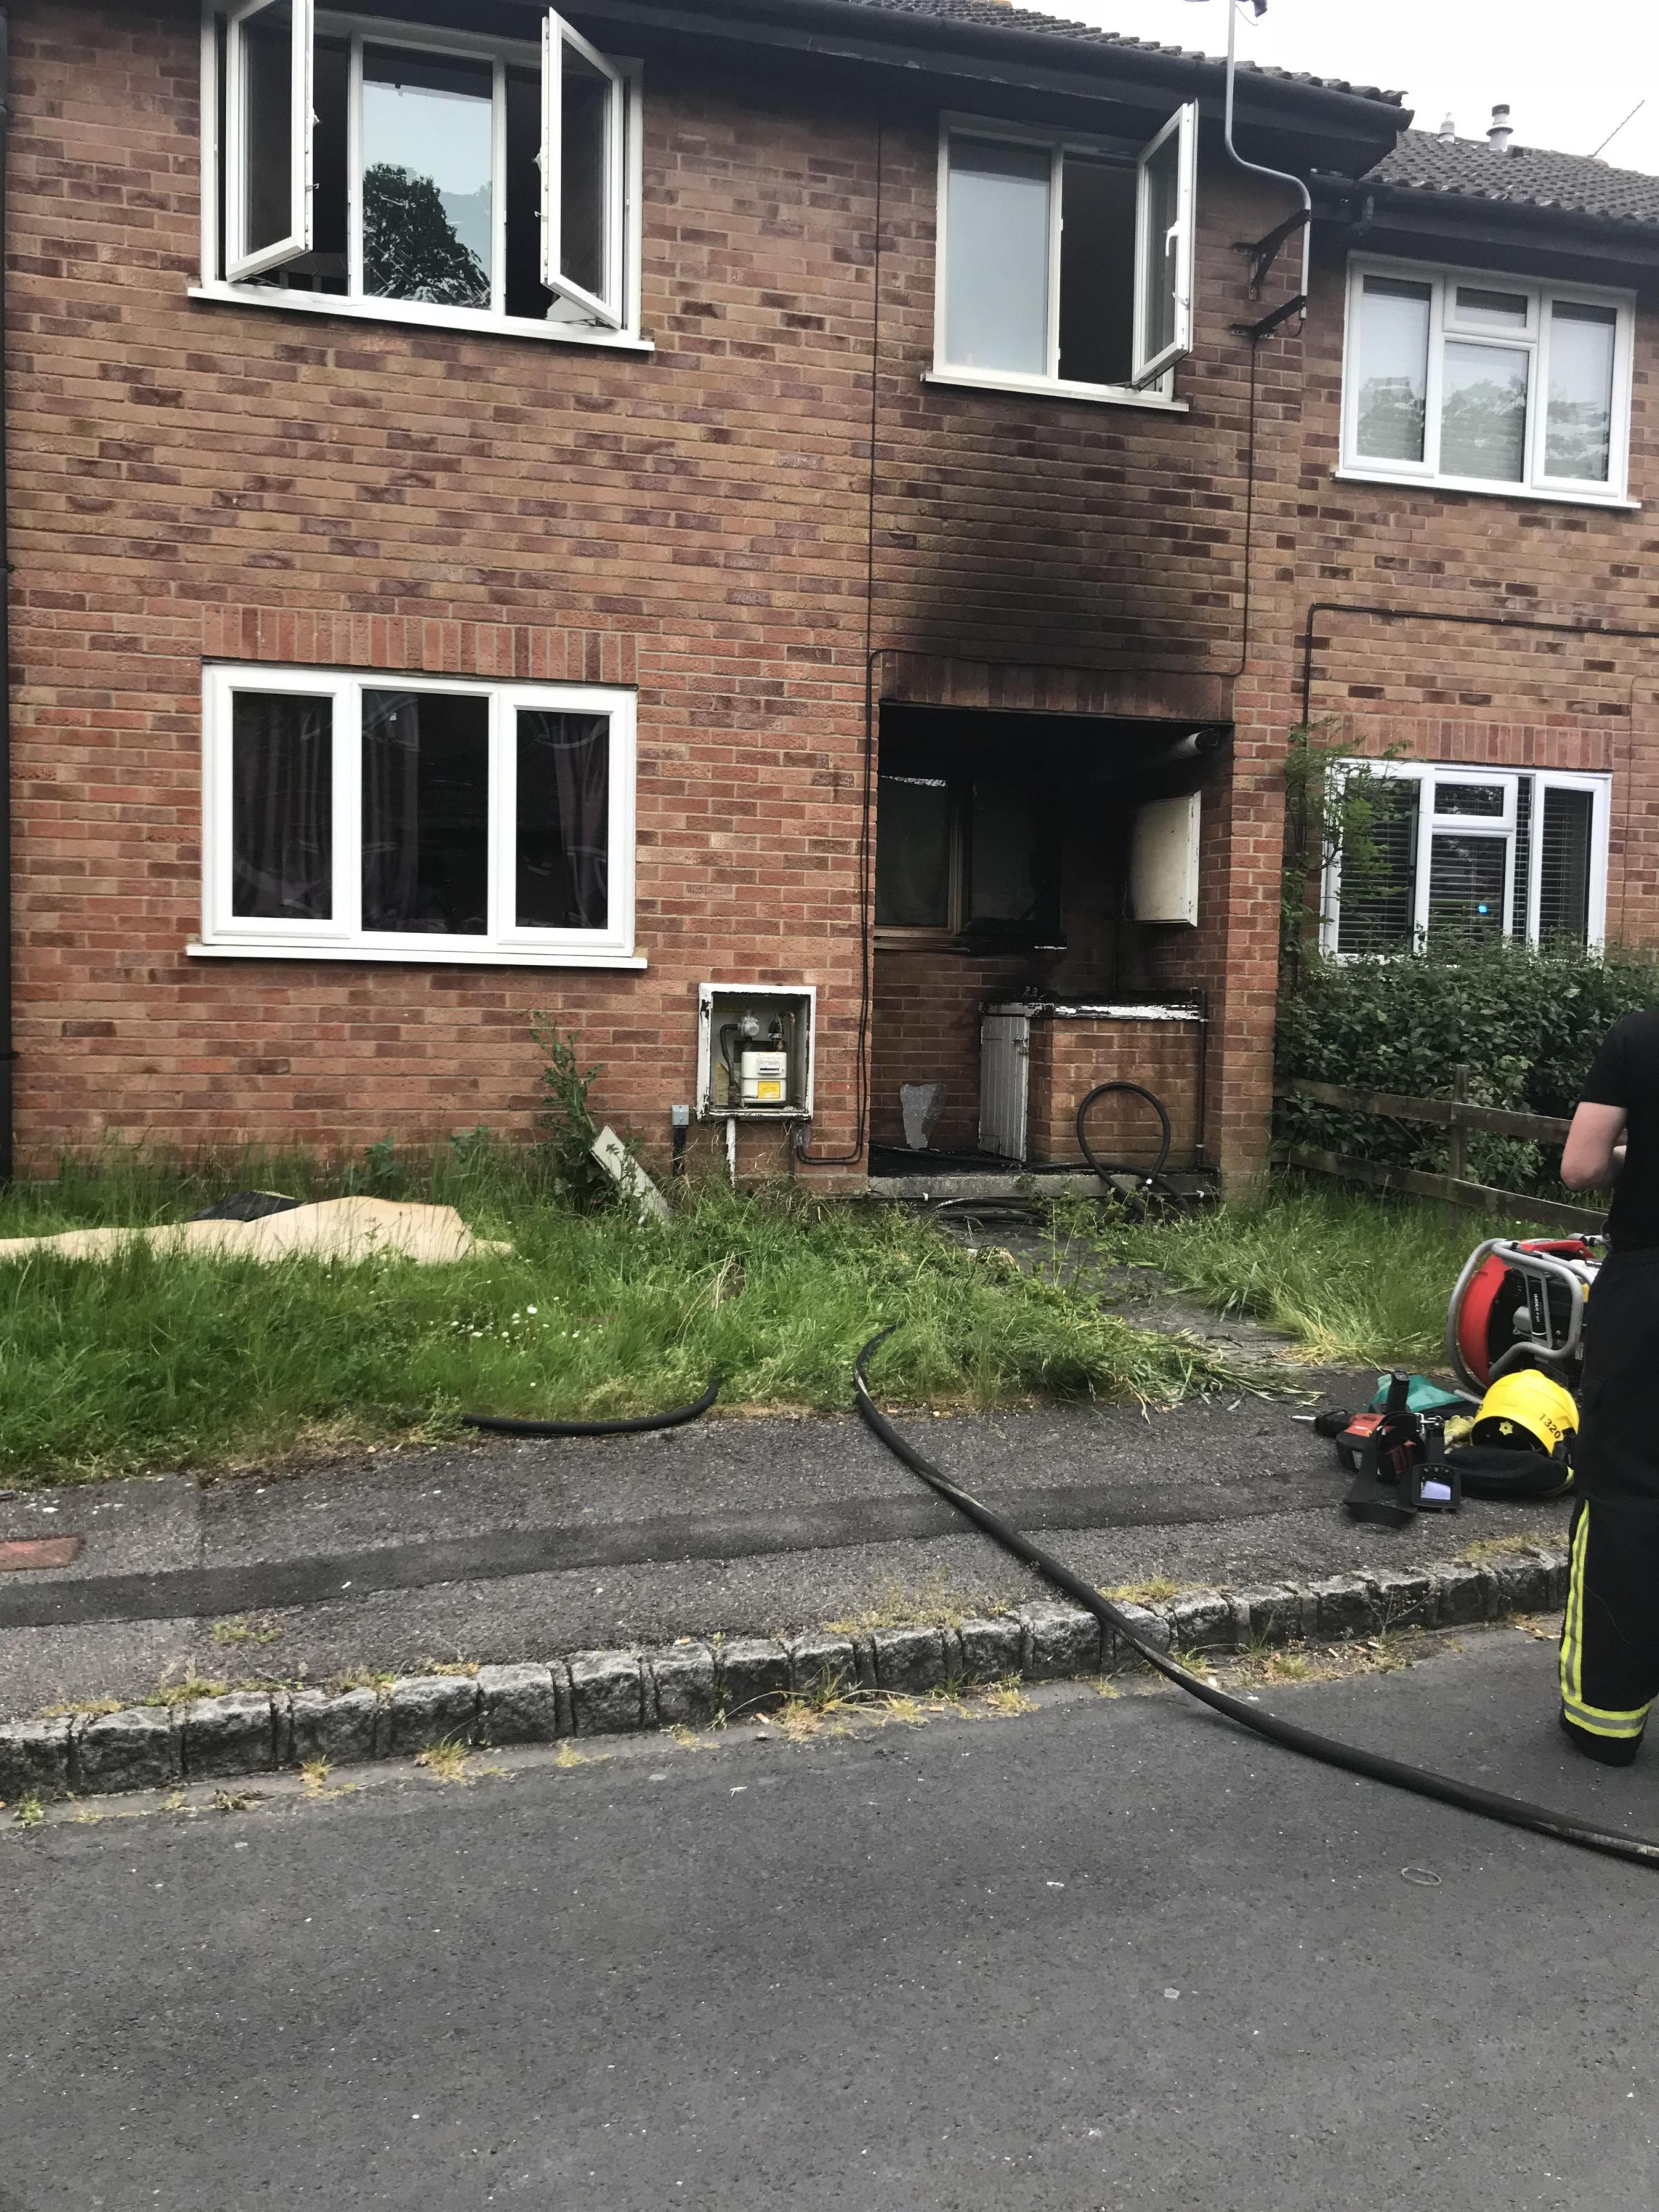 Discarded cigarette sets fire to building in Chineham